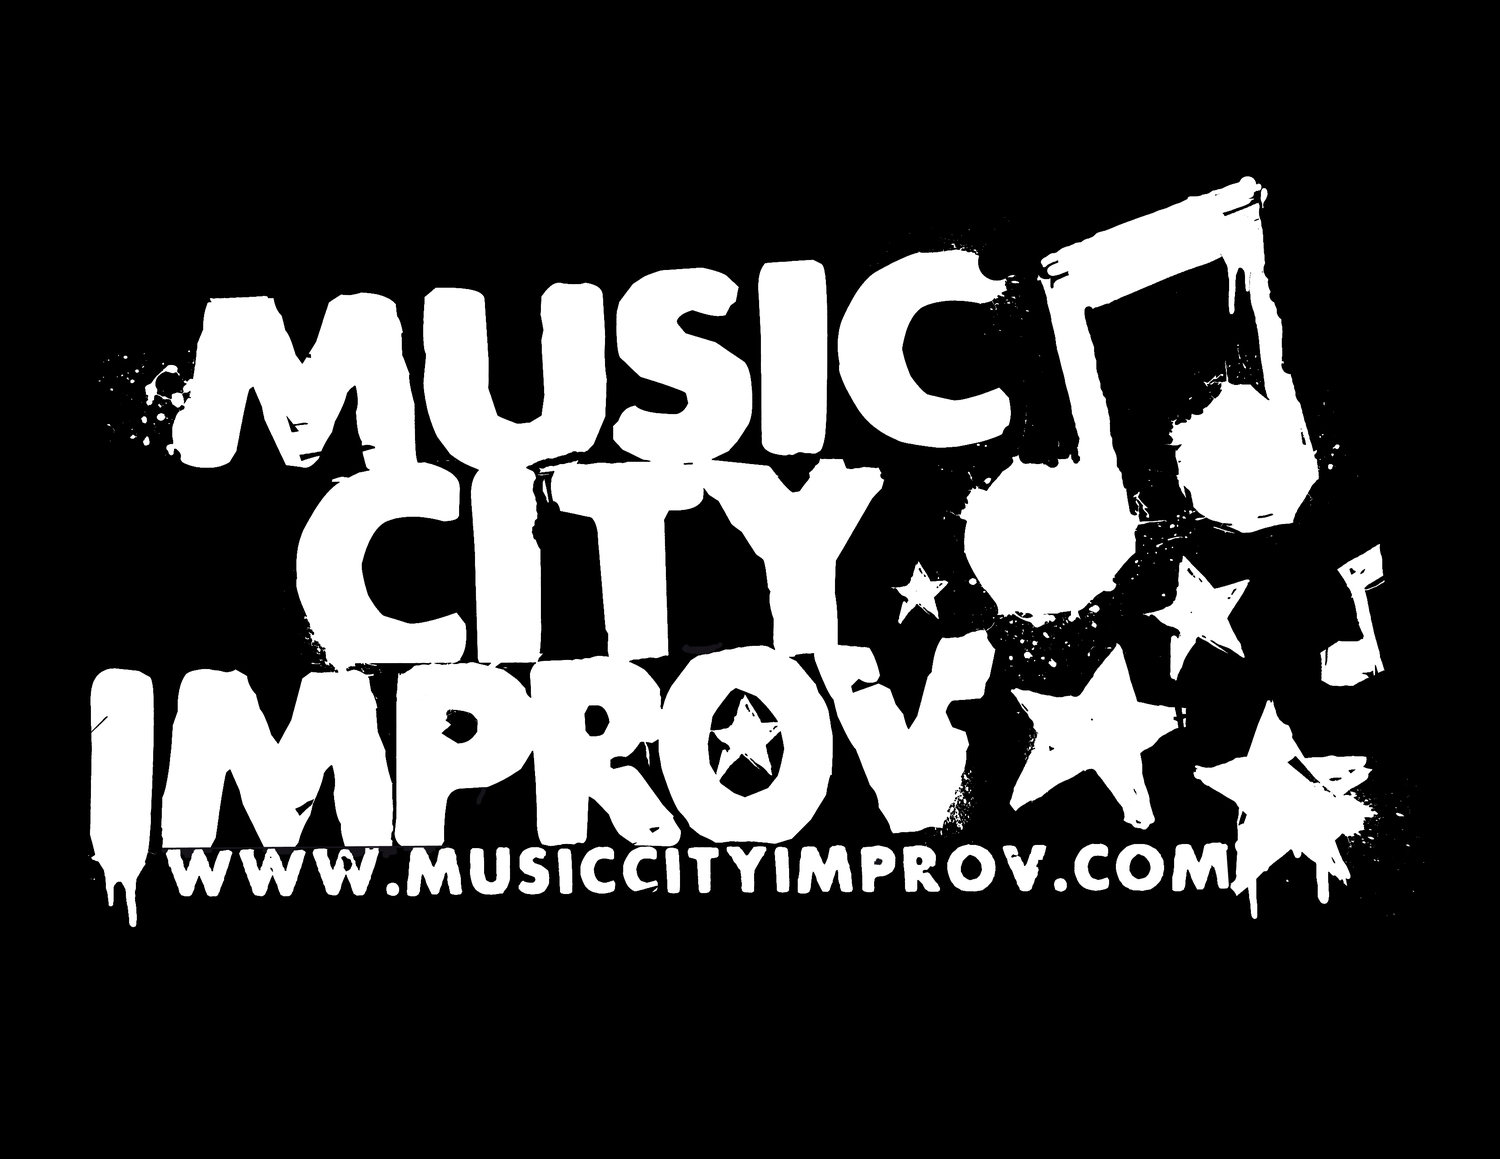 Music City Improv